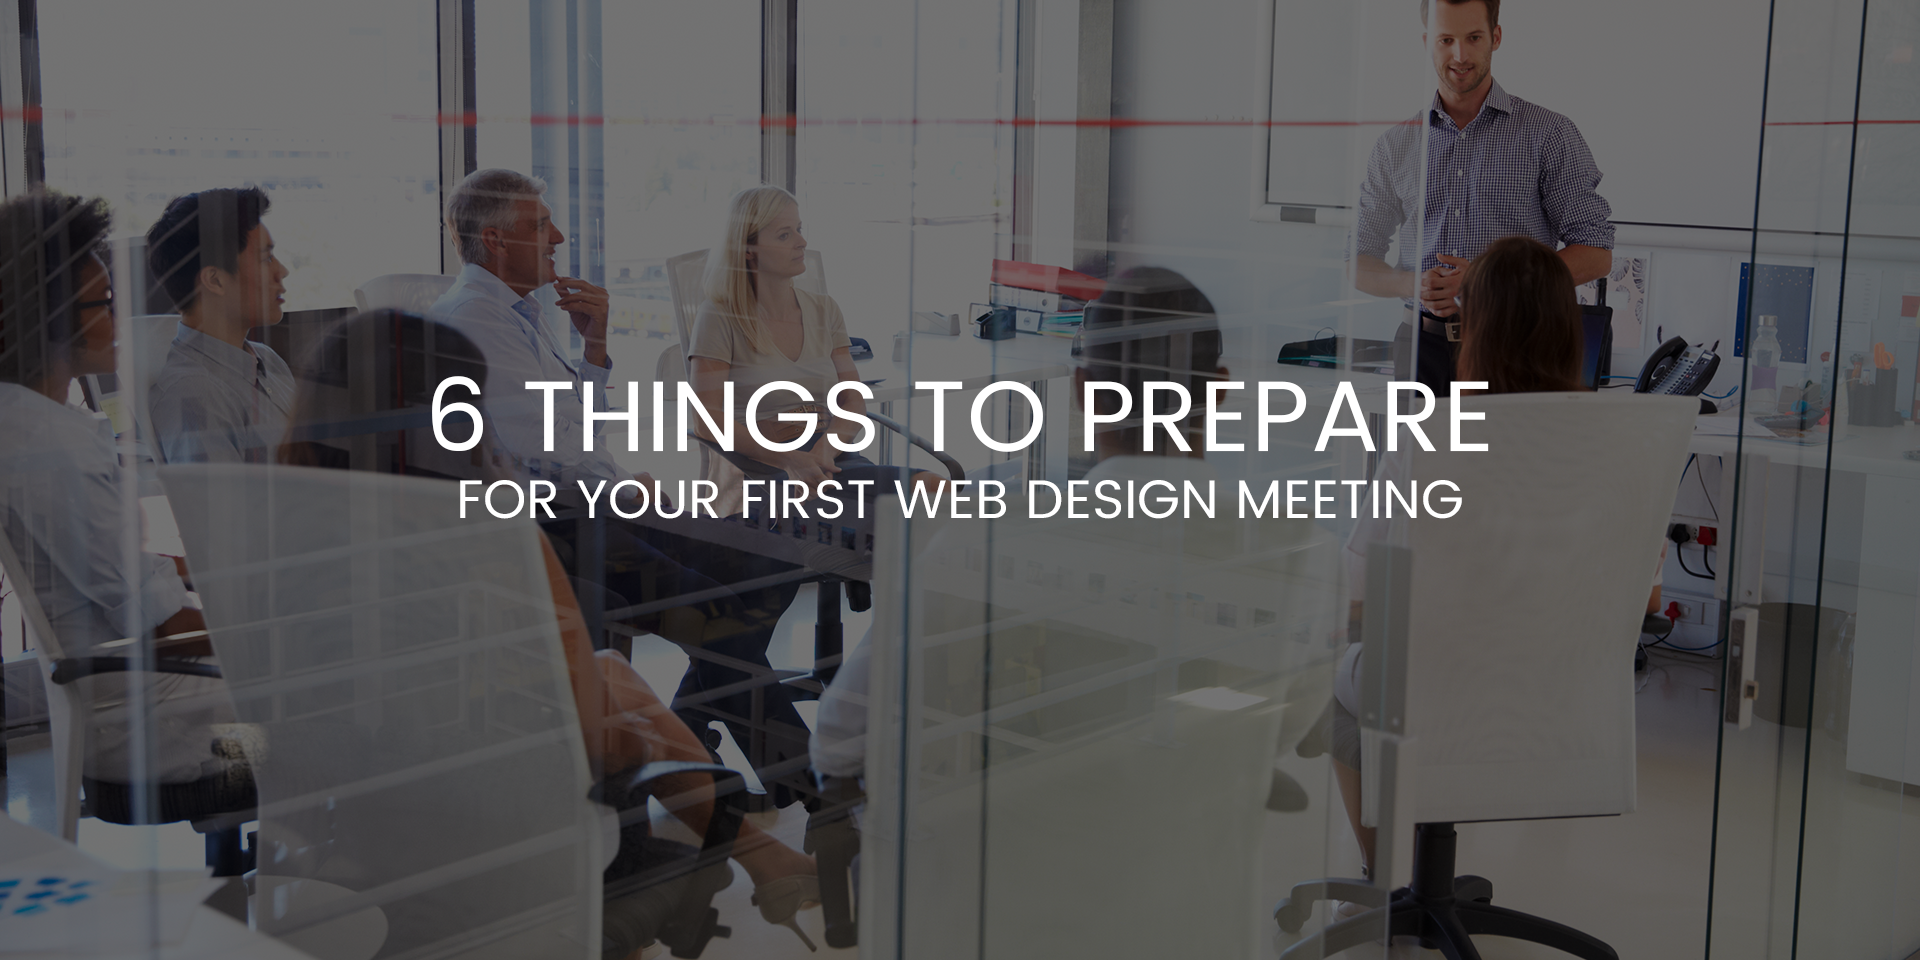 6 Things to Prepare for Your First Web Design Meeting